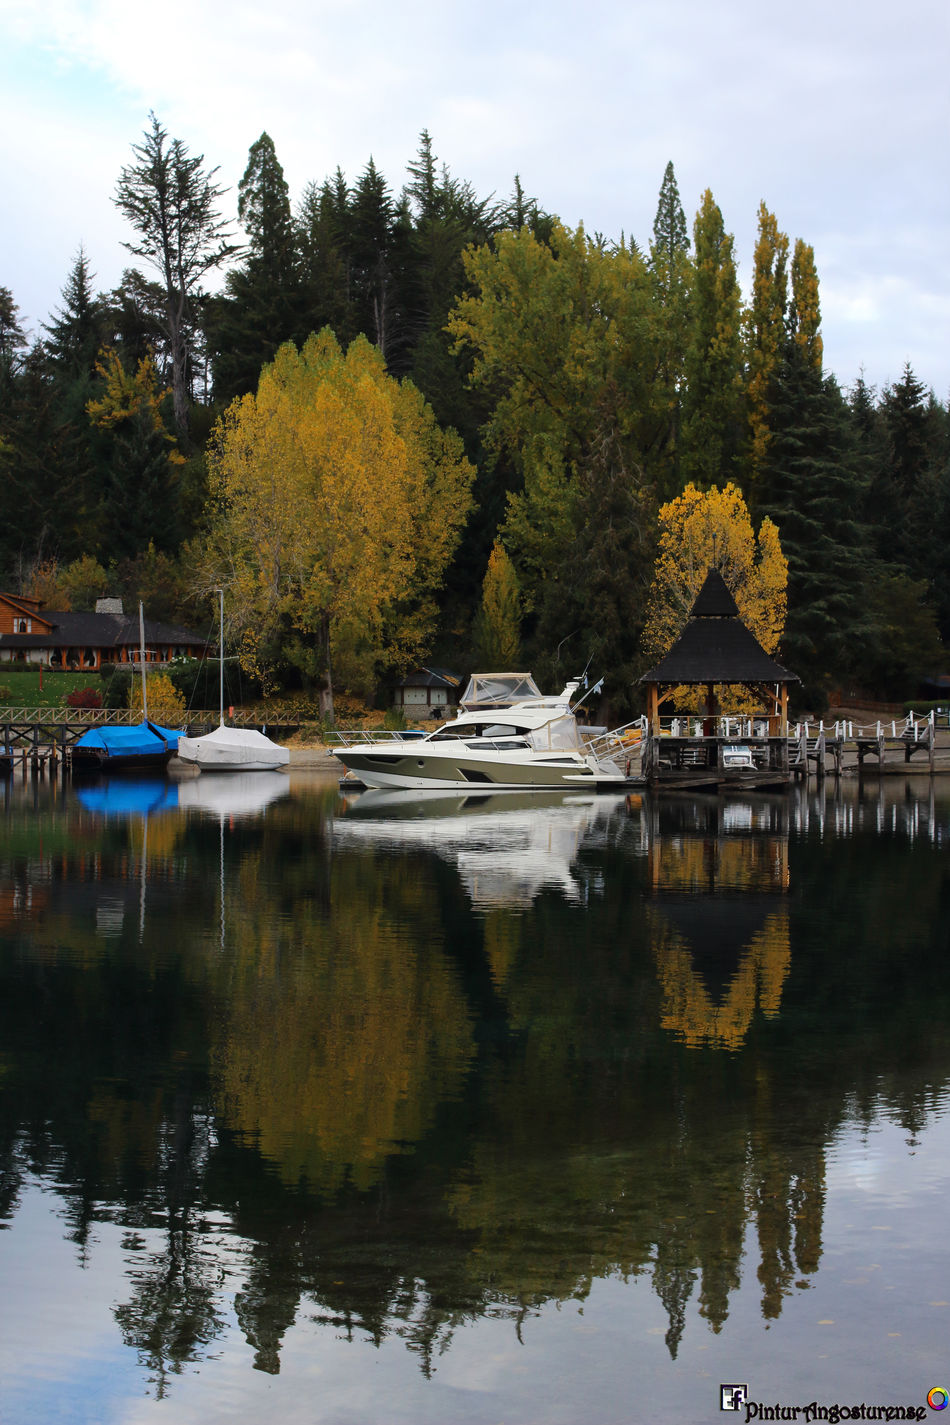 Y así nos recibe hoy la mañana! Buen día gente beia!!! :) A disfrutar!!! Excelente jornada! Saludos! Architecture Autumn Beauty In Nature Building Exterior Day Lake Mode Of Transport Moored Mountain Nature Nautical Vessel No People Outdoors Reflection Scenics Sky Tranquil Scene Tranquility Transportation Travel Destinations Tree Water Waterfront Yacht